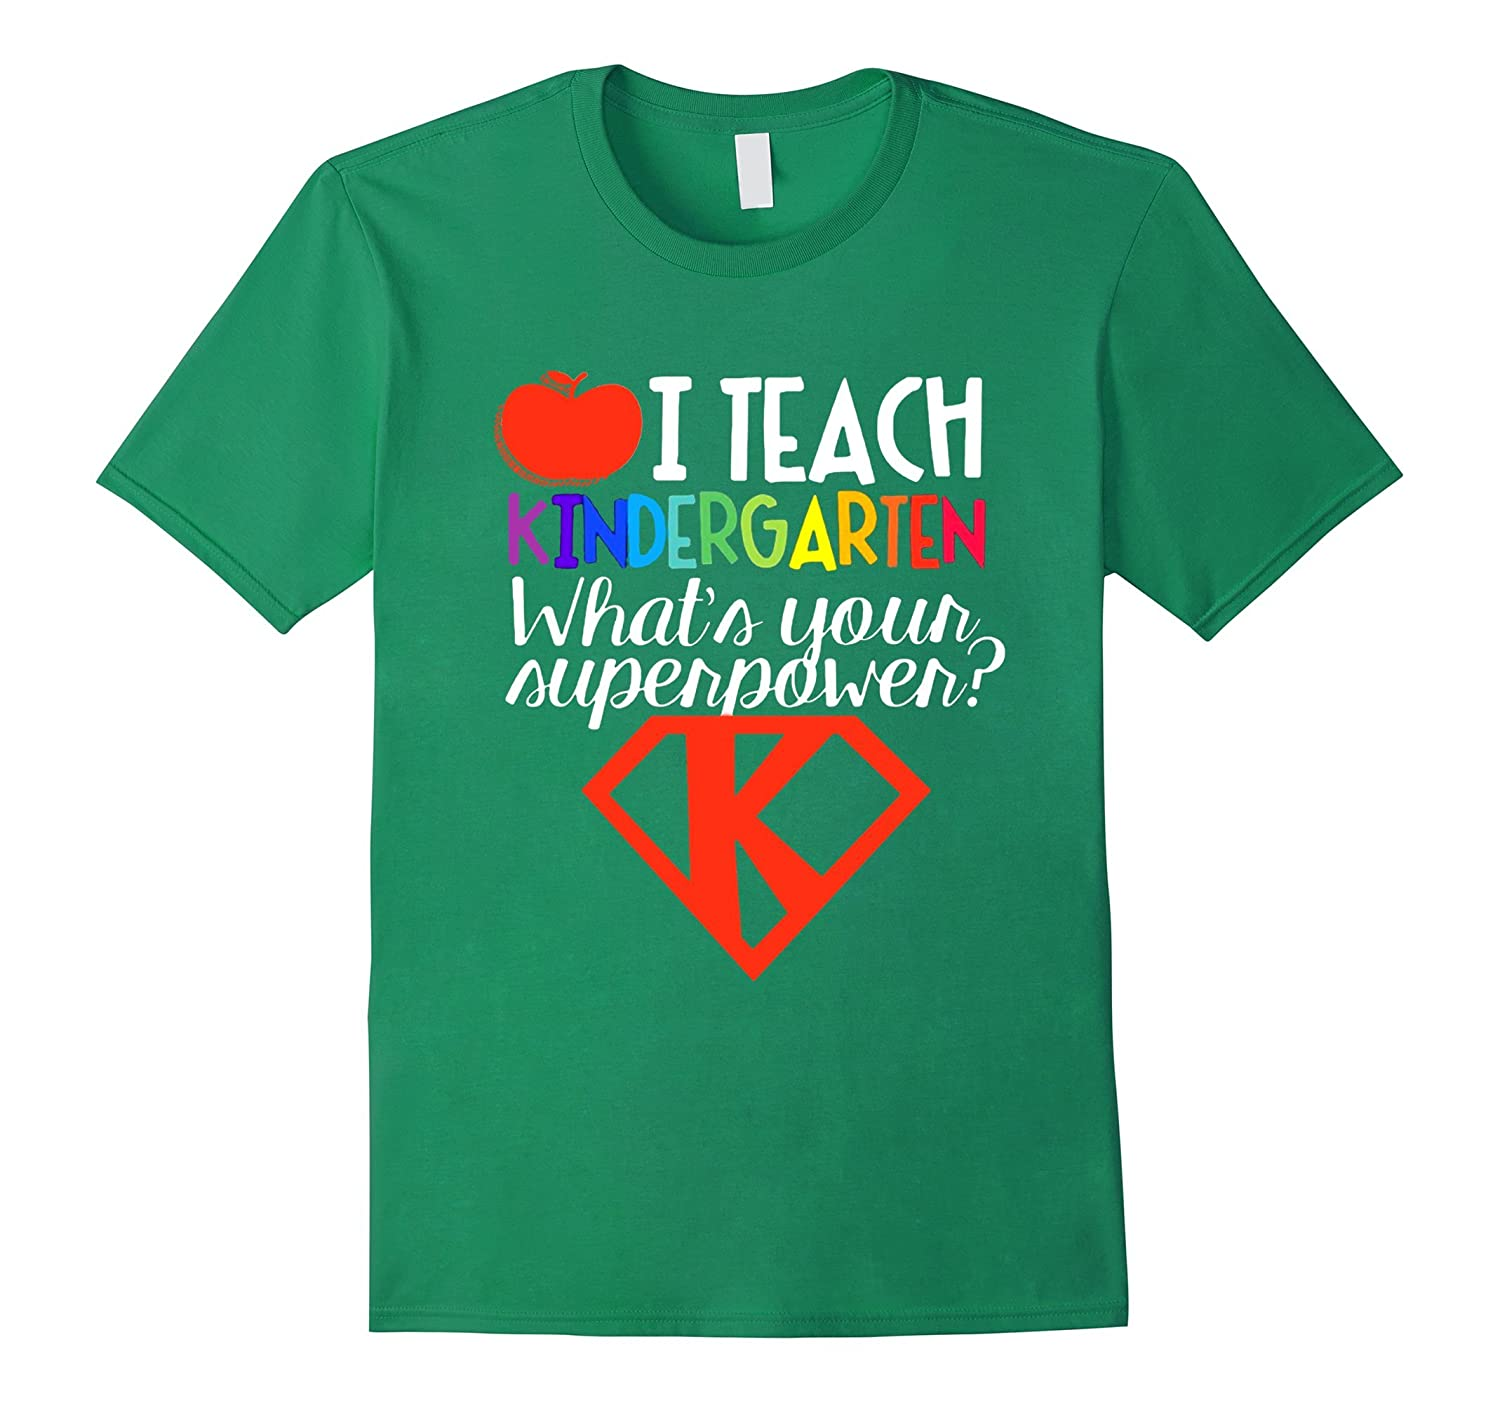 I Teacher Kindergarten Whats Your Super Power T Shirt-CL – Colamaga